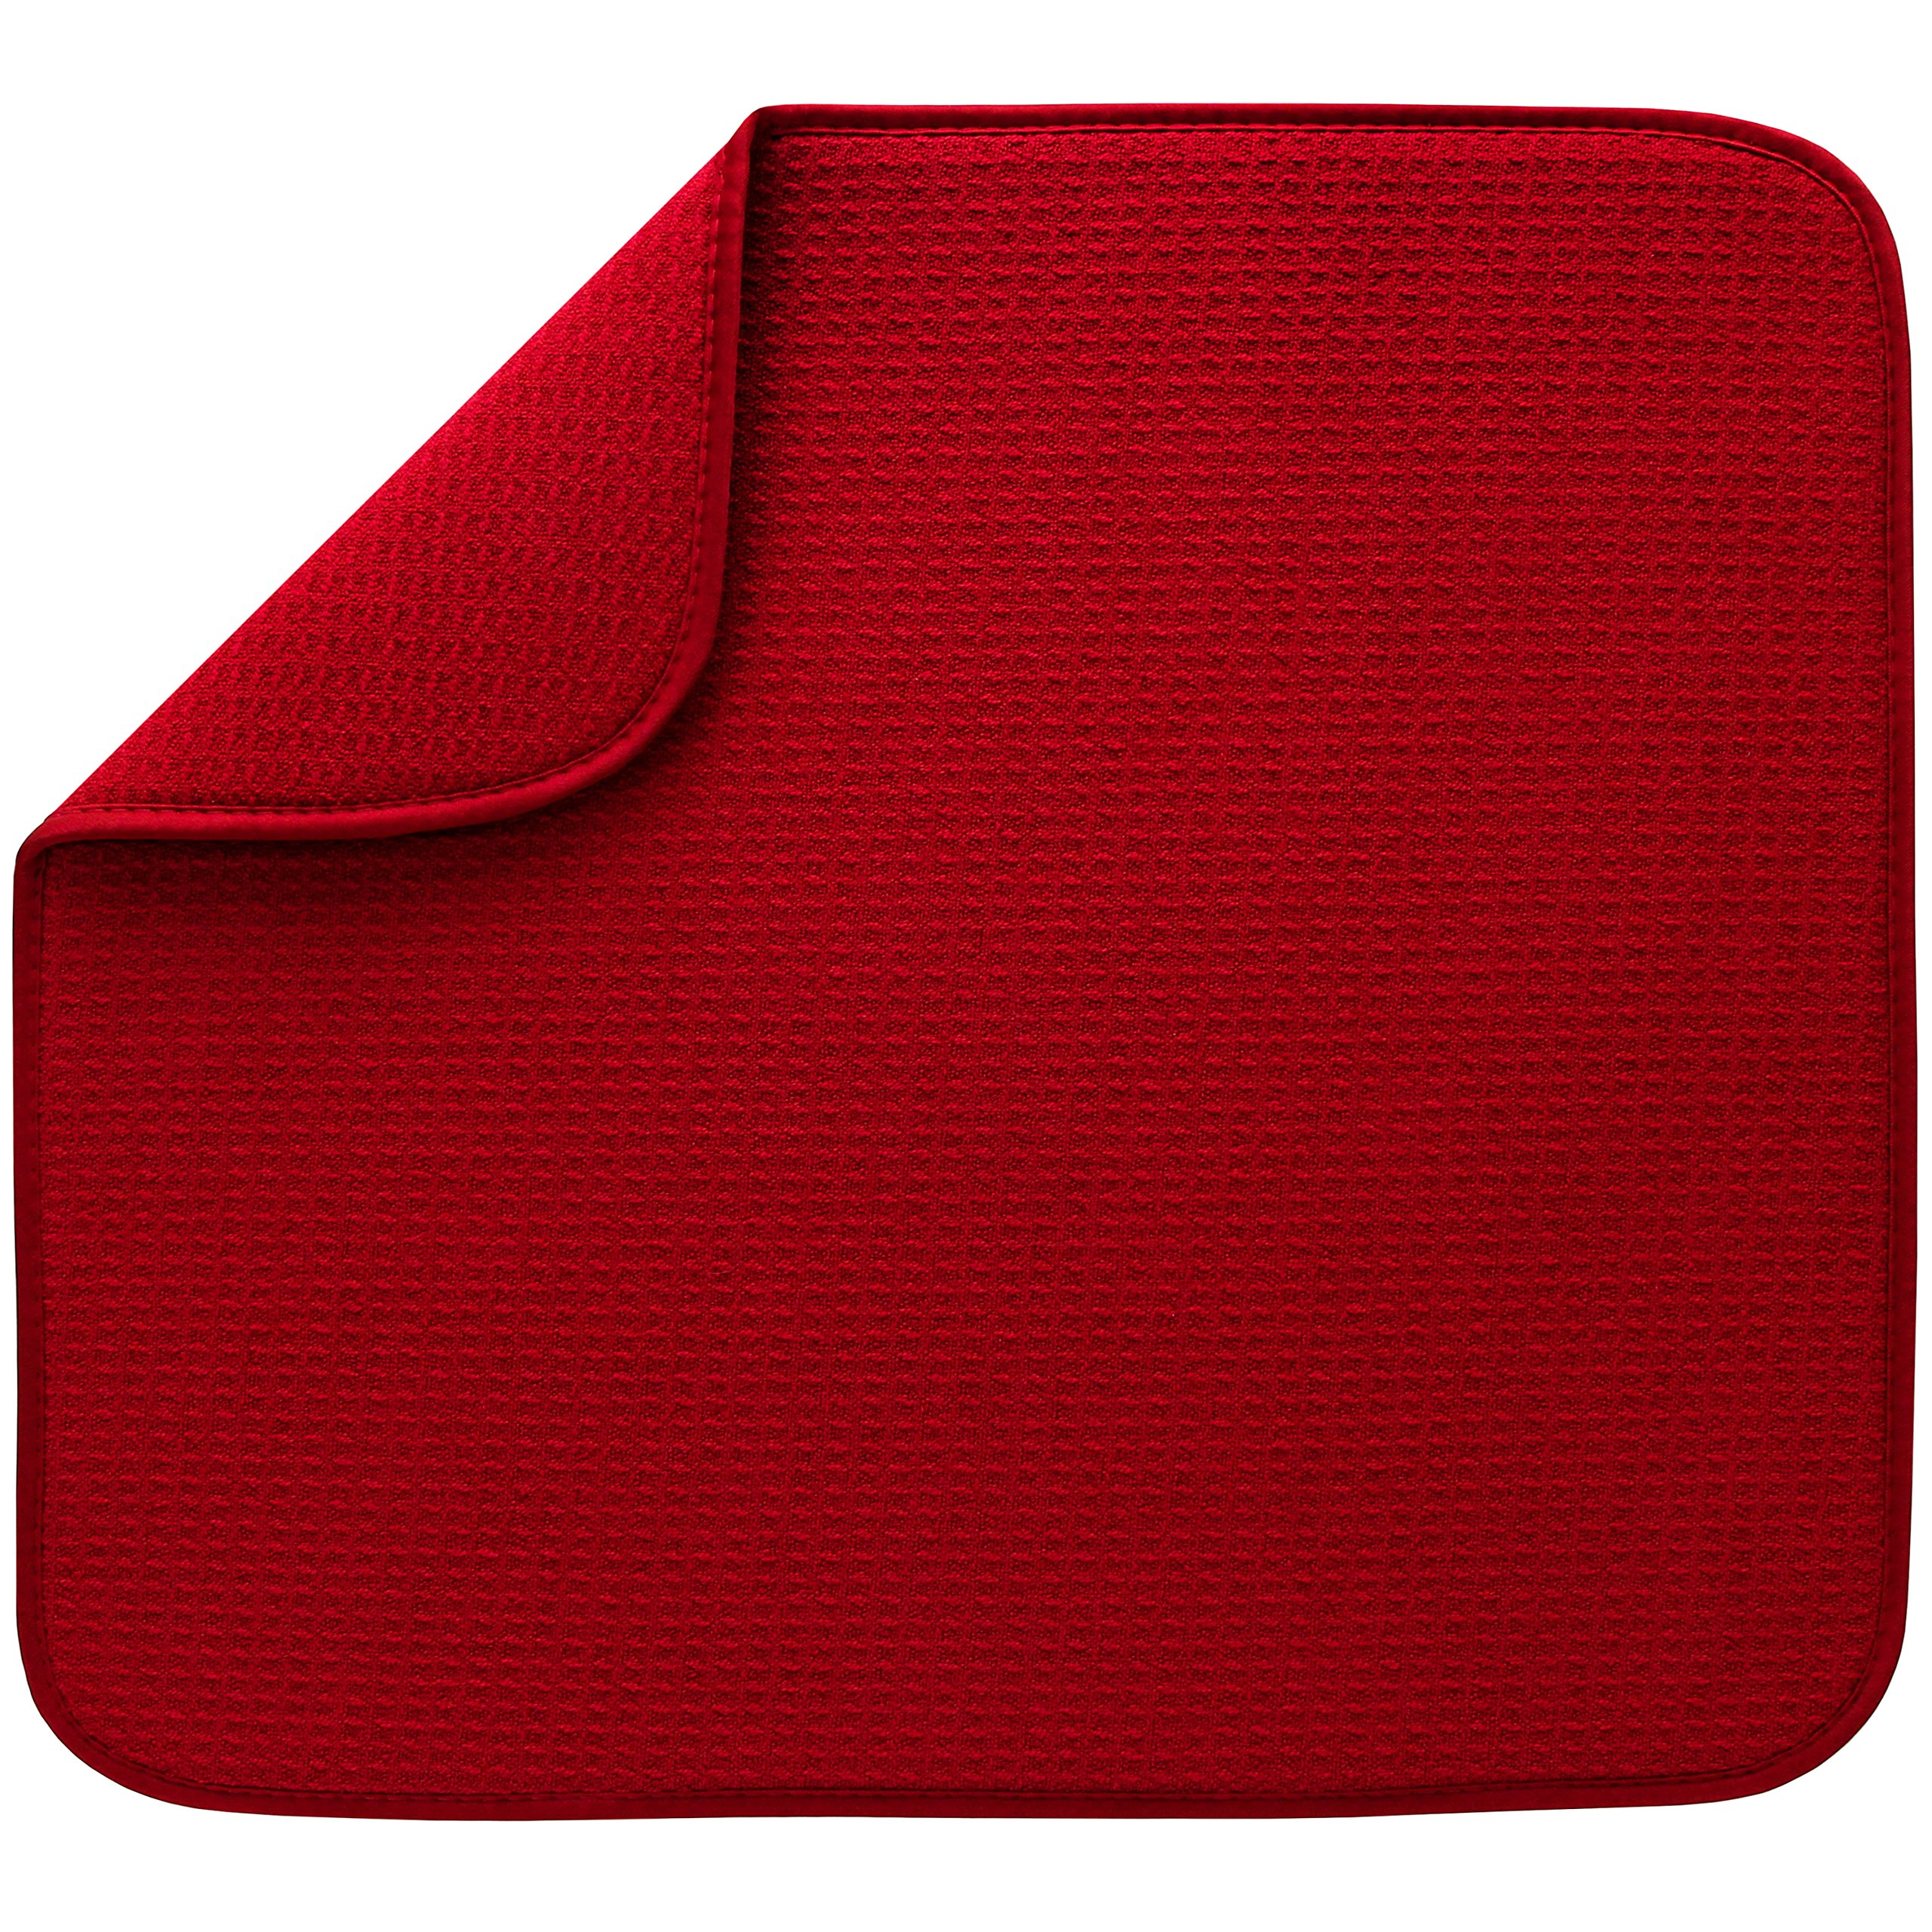 S&T Microfiber Dish Drying Mat, 16'' x 18'', Red by STS